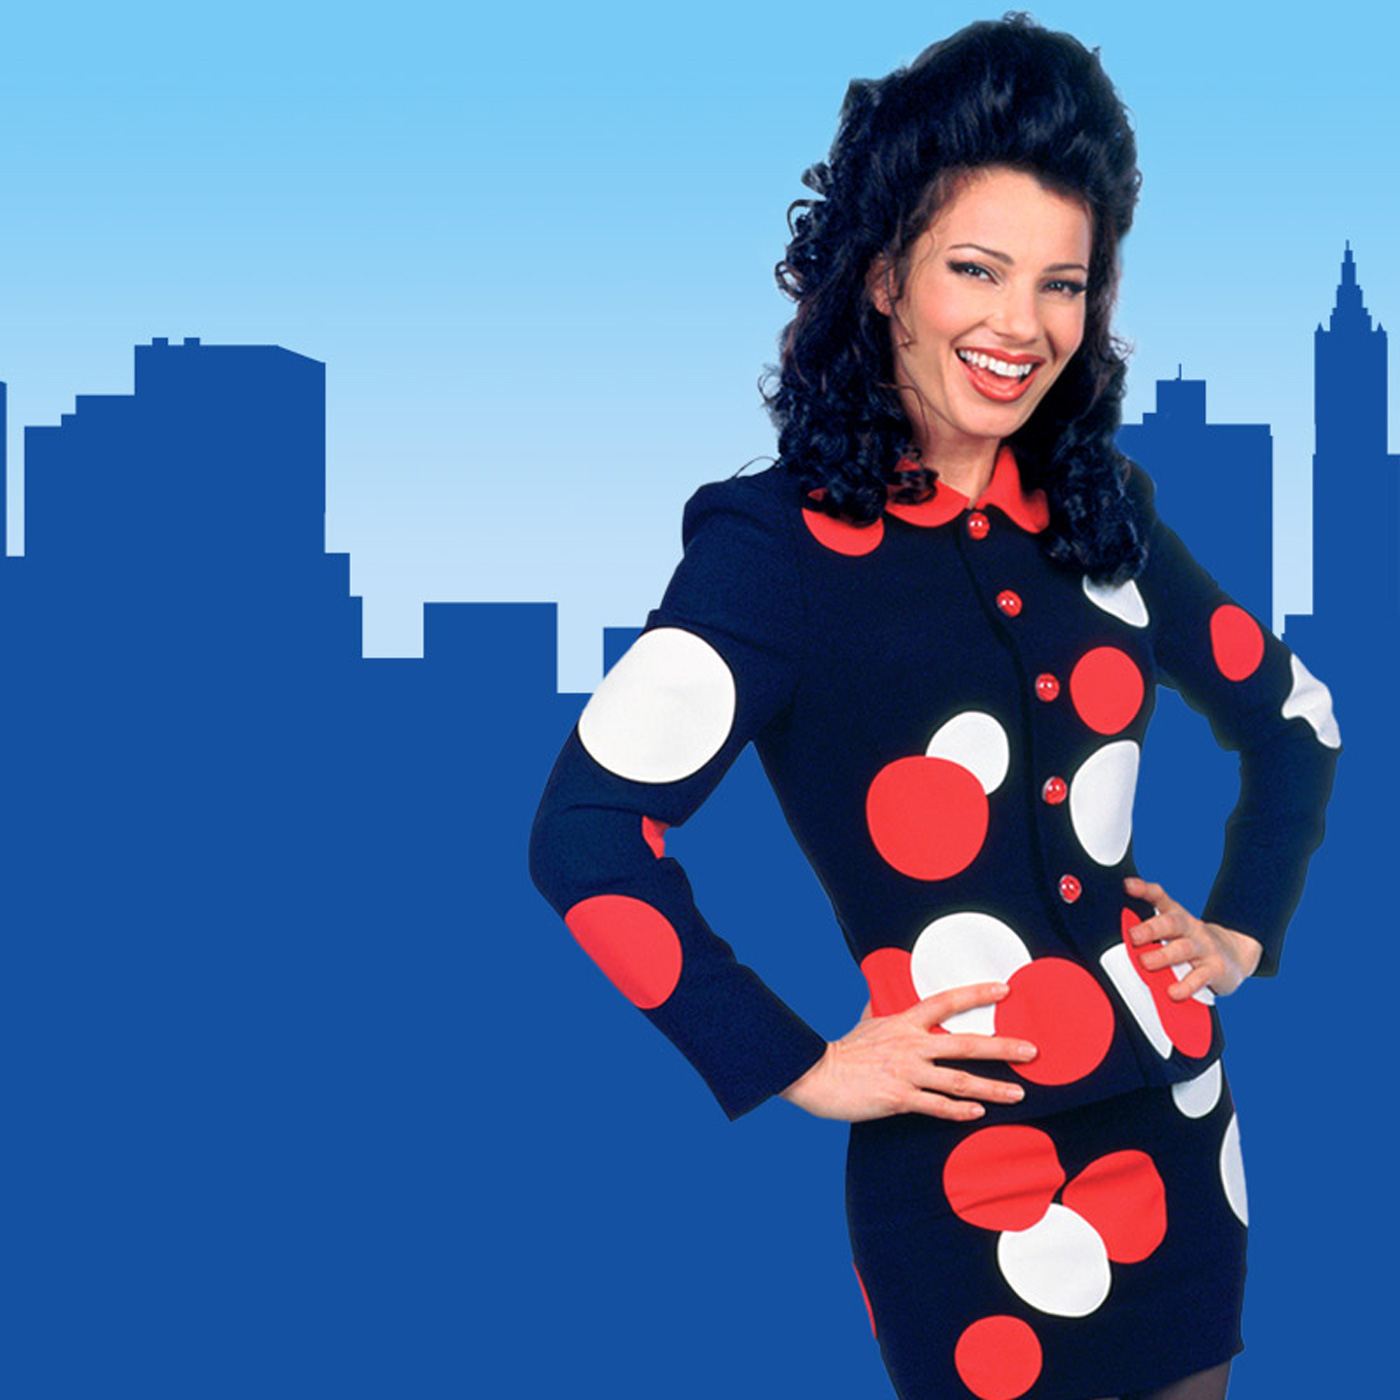 Top 5 - Video Game Character Pairings to Play the Roles of Mr Sheffield and Fran Drescher in a Reboot of The Nanny